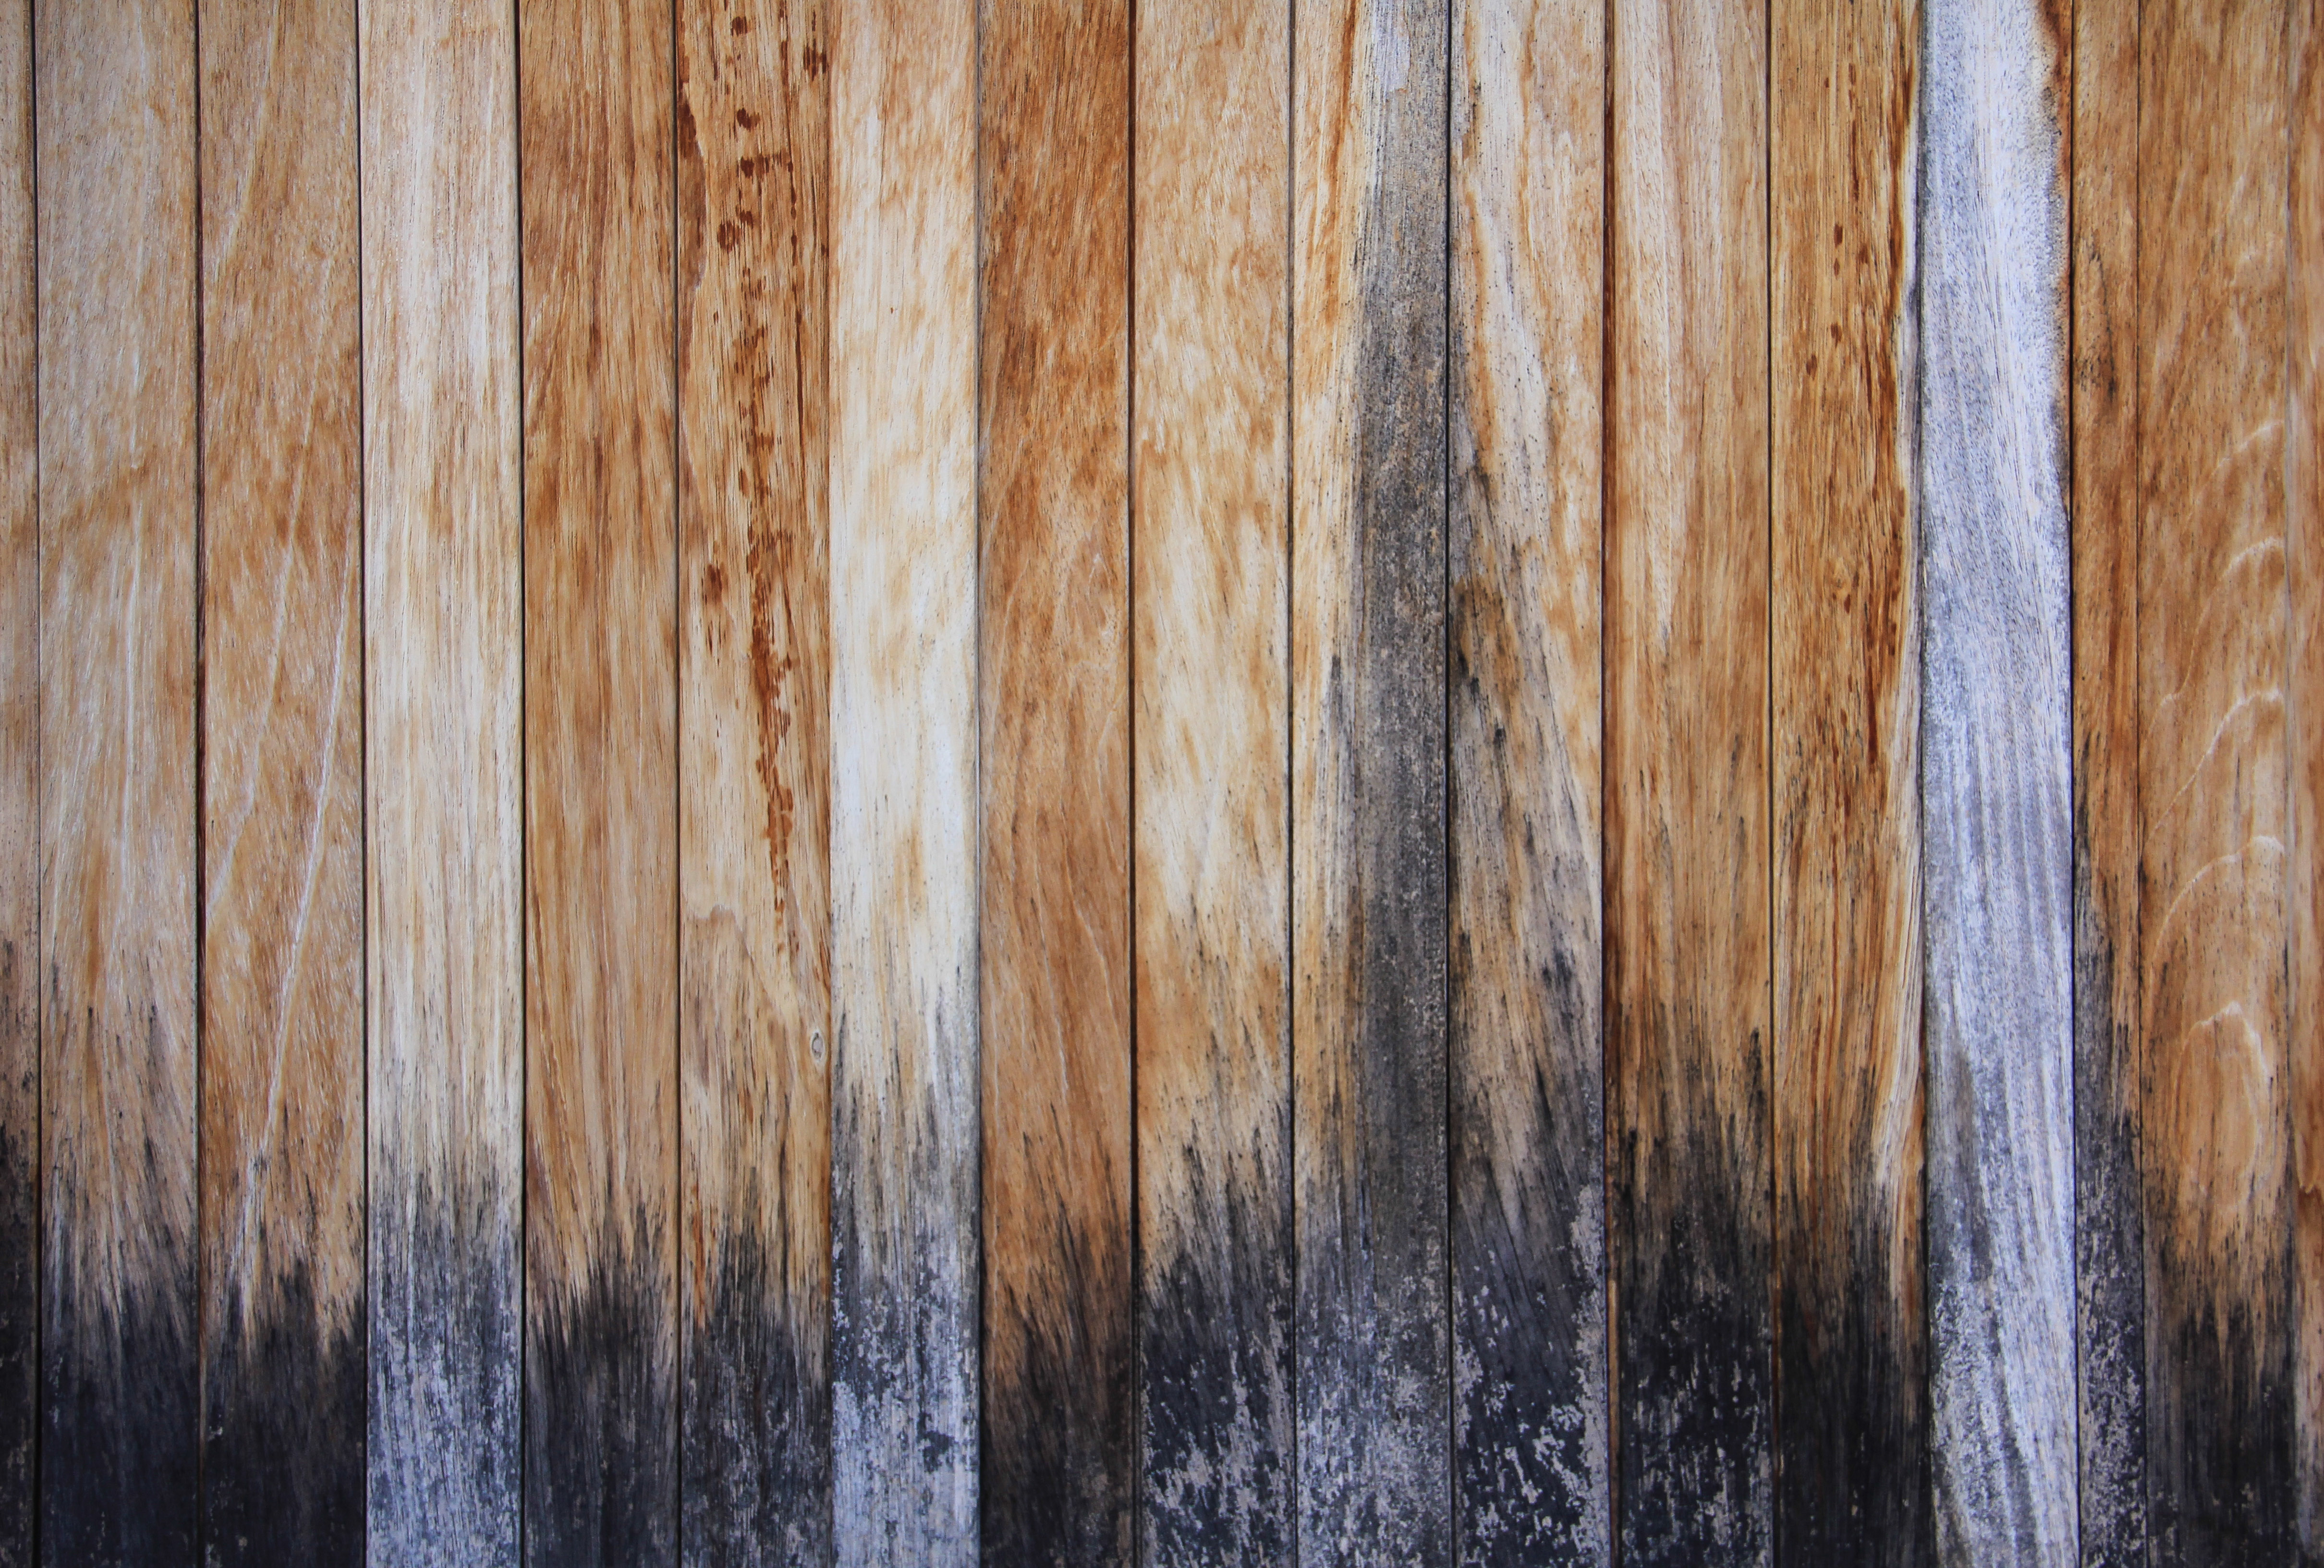 Wood texture fence stained multi colored stock wallpaper texturex wood texture fence stained multi colored stock wallpaper texturex free and premium textures and high resolution graphics voltagebd Choice Image